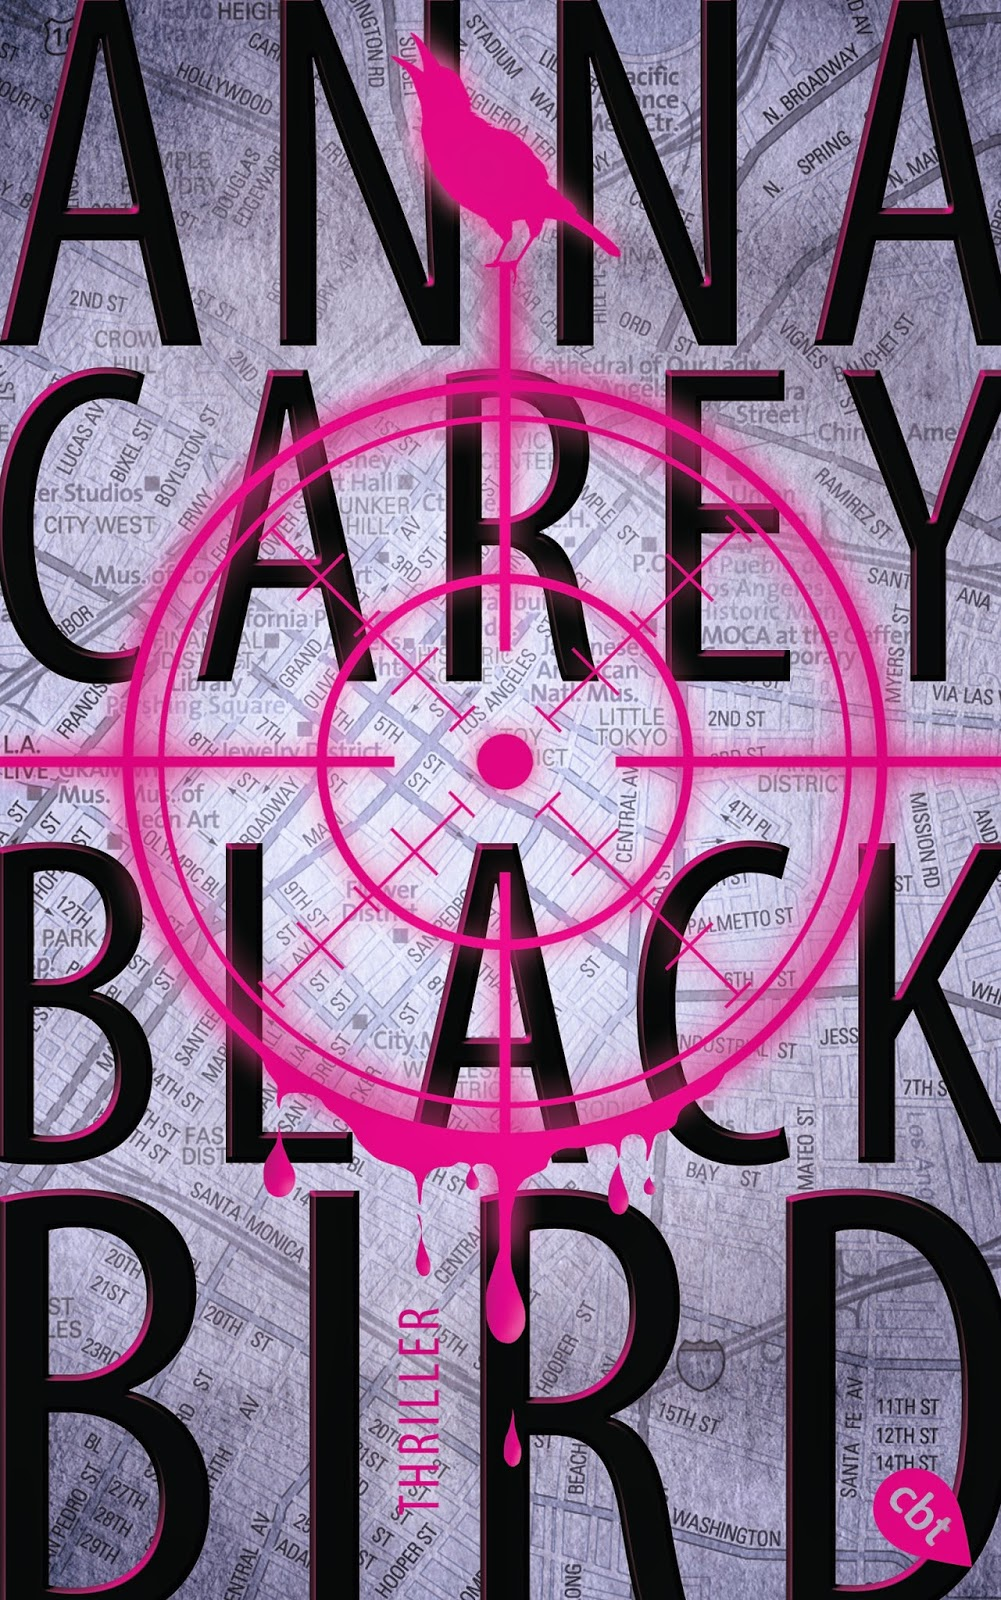 http://www.amazon.de/Blackbird-Band-1-Anna-Carey/dp/357016327X/ref=sr_1_2_twi_1?ie=UTF8&qid=1415457663&sr=8-2&keywords=blackbird